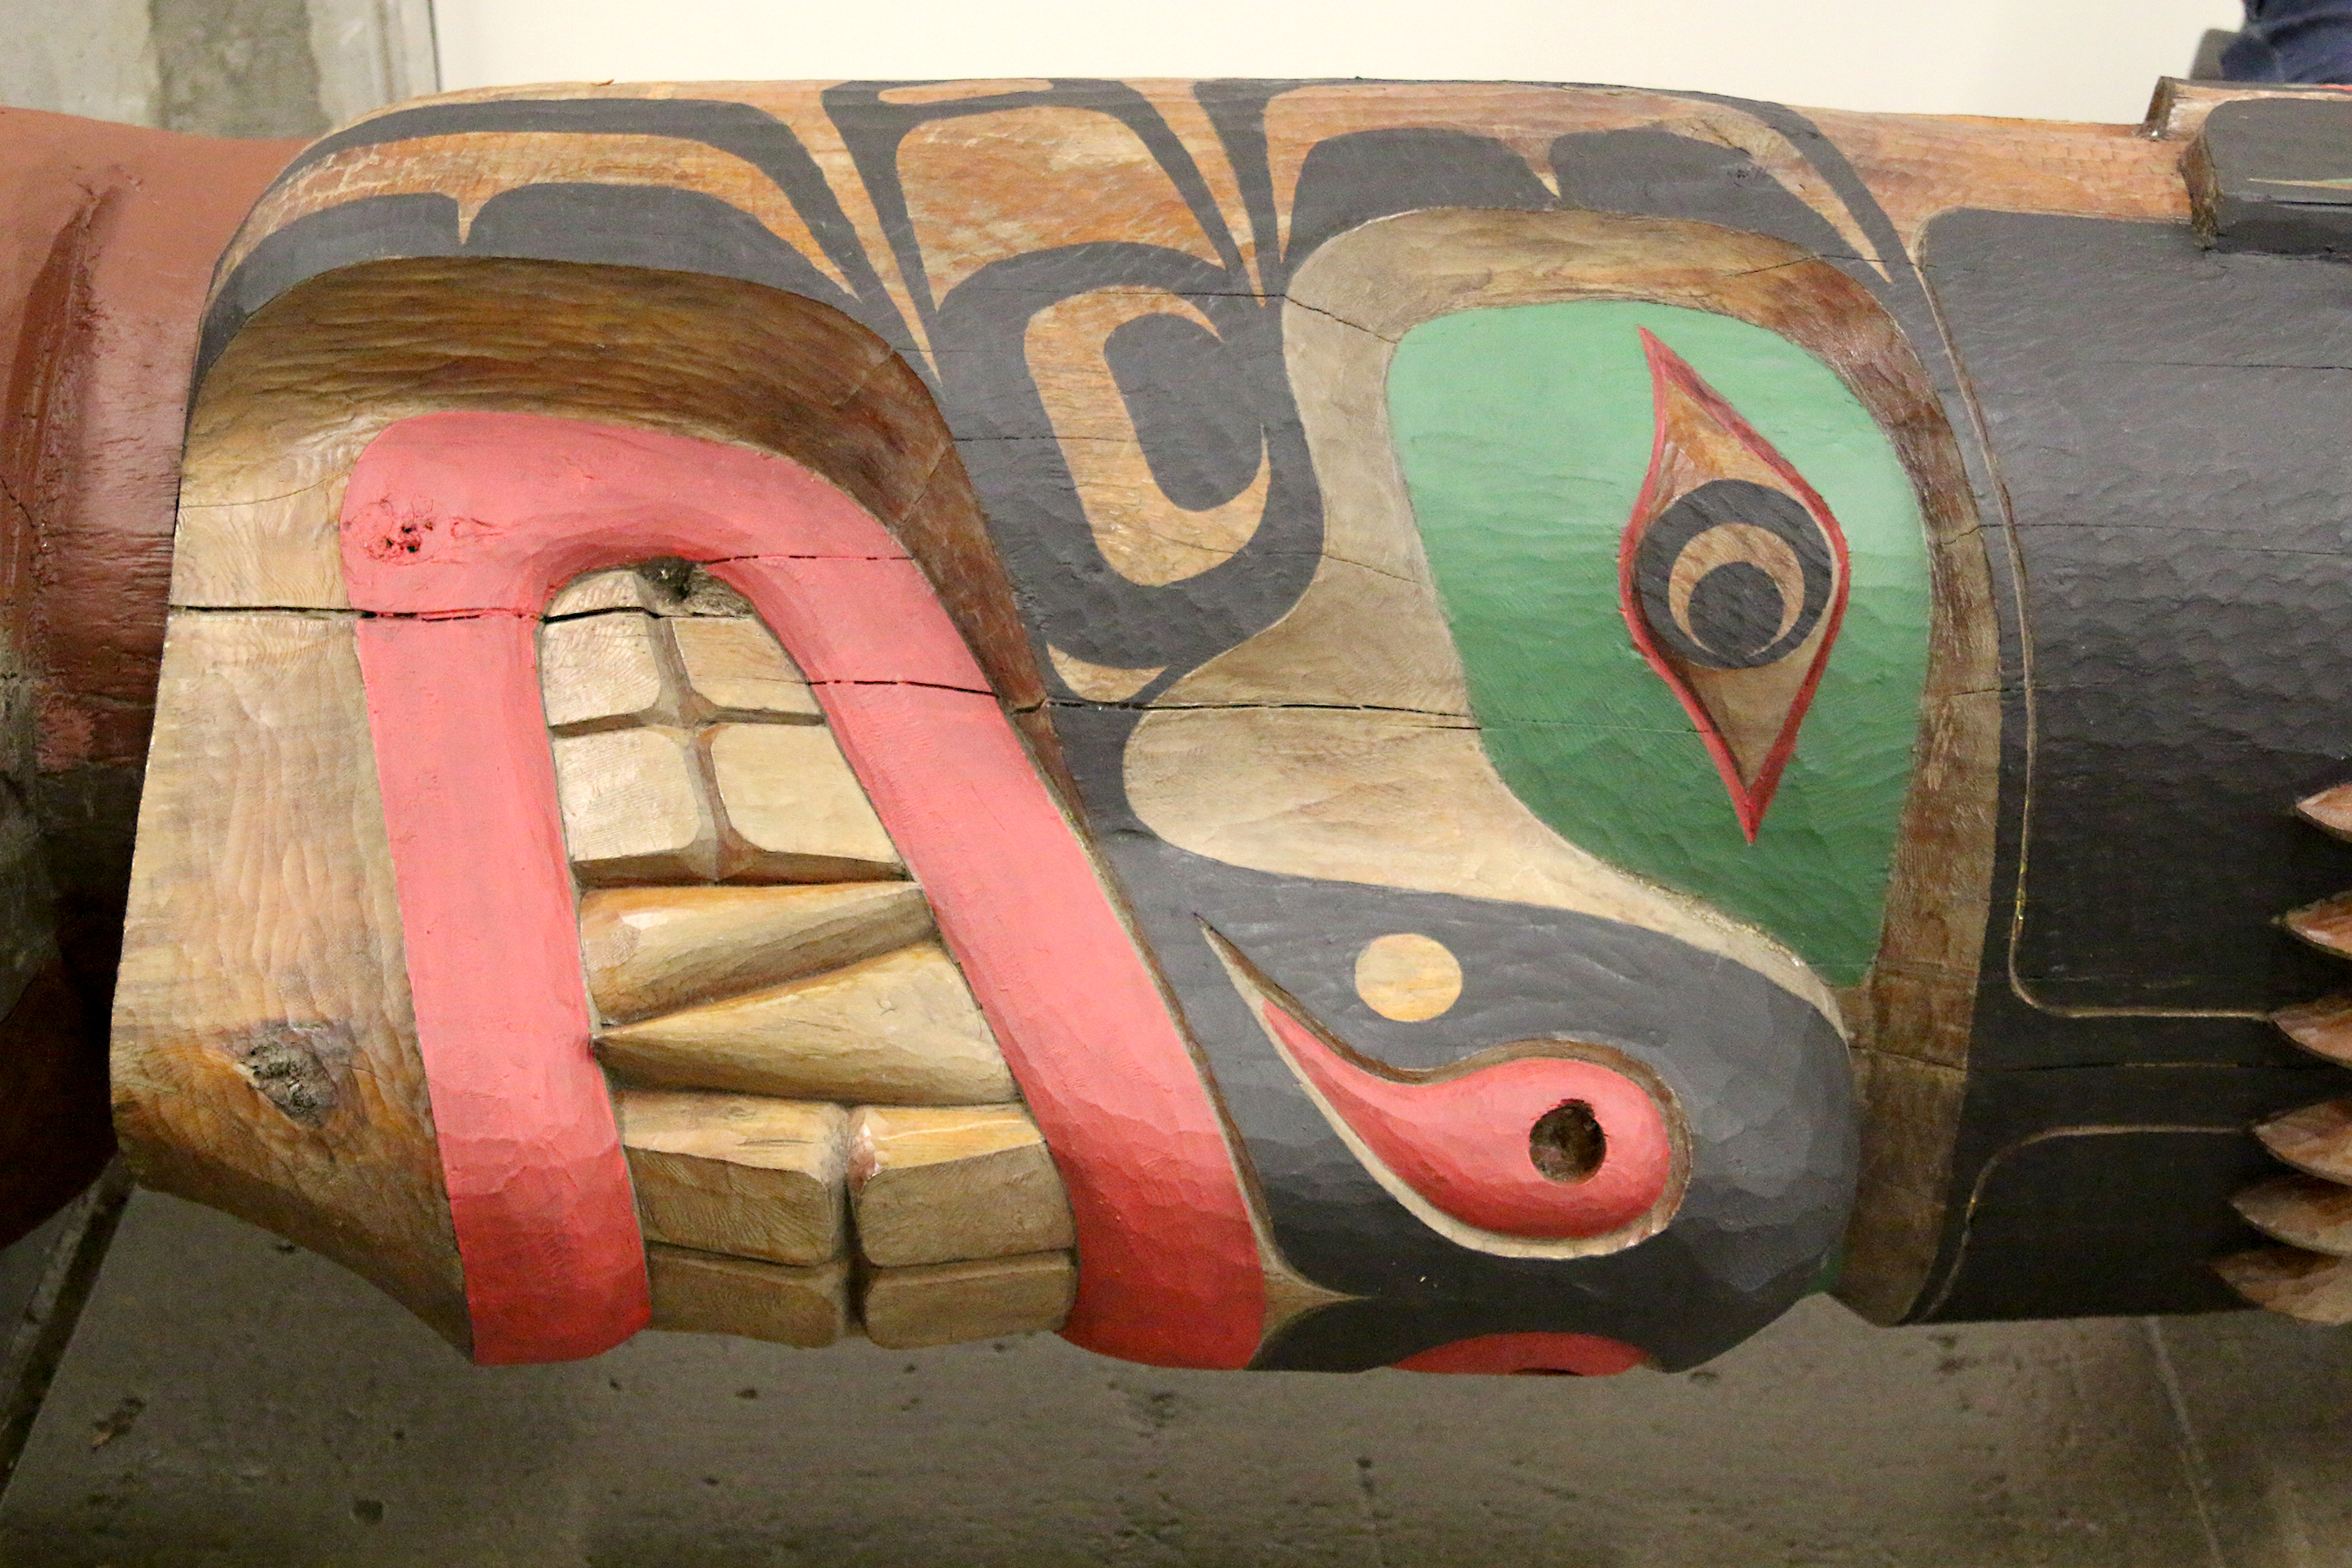 Towering carved cedar totem poles are part of the heritage of the Pacific Northwest Native tribes. They are filled with the images and myths from their world like bear, thunderbird, killer whale, and the like.